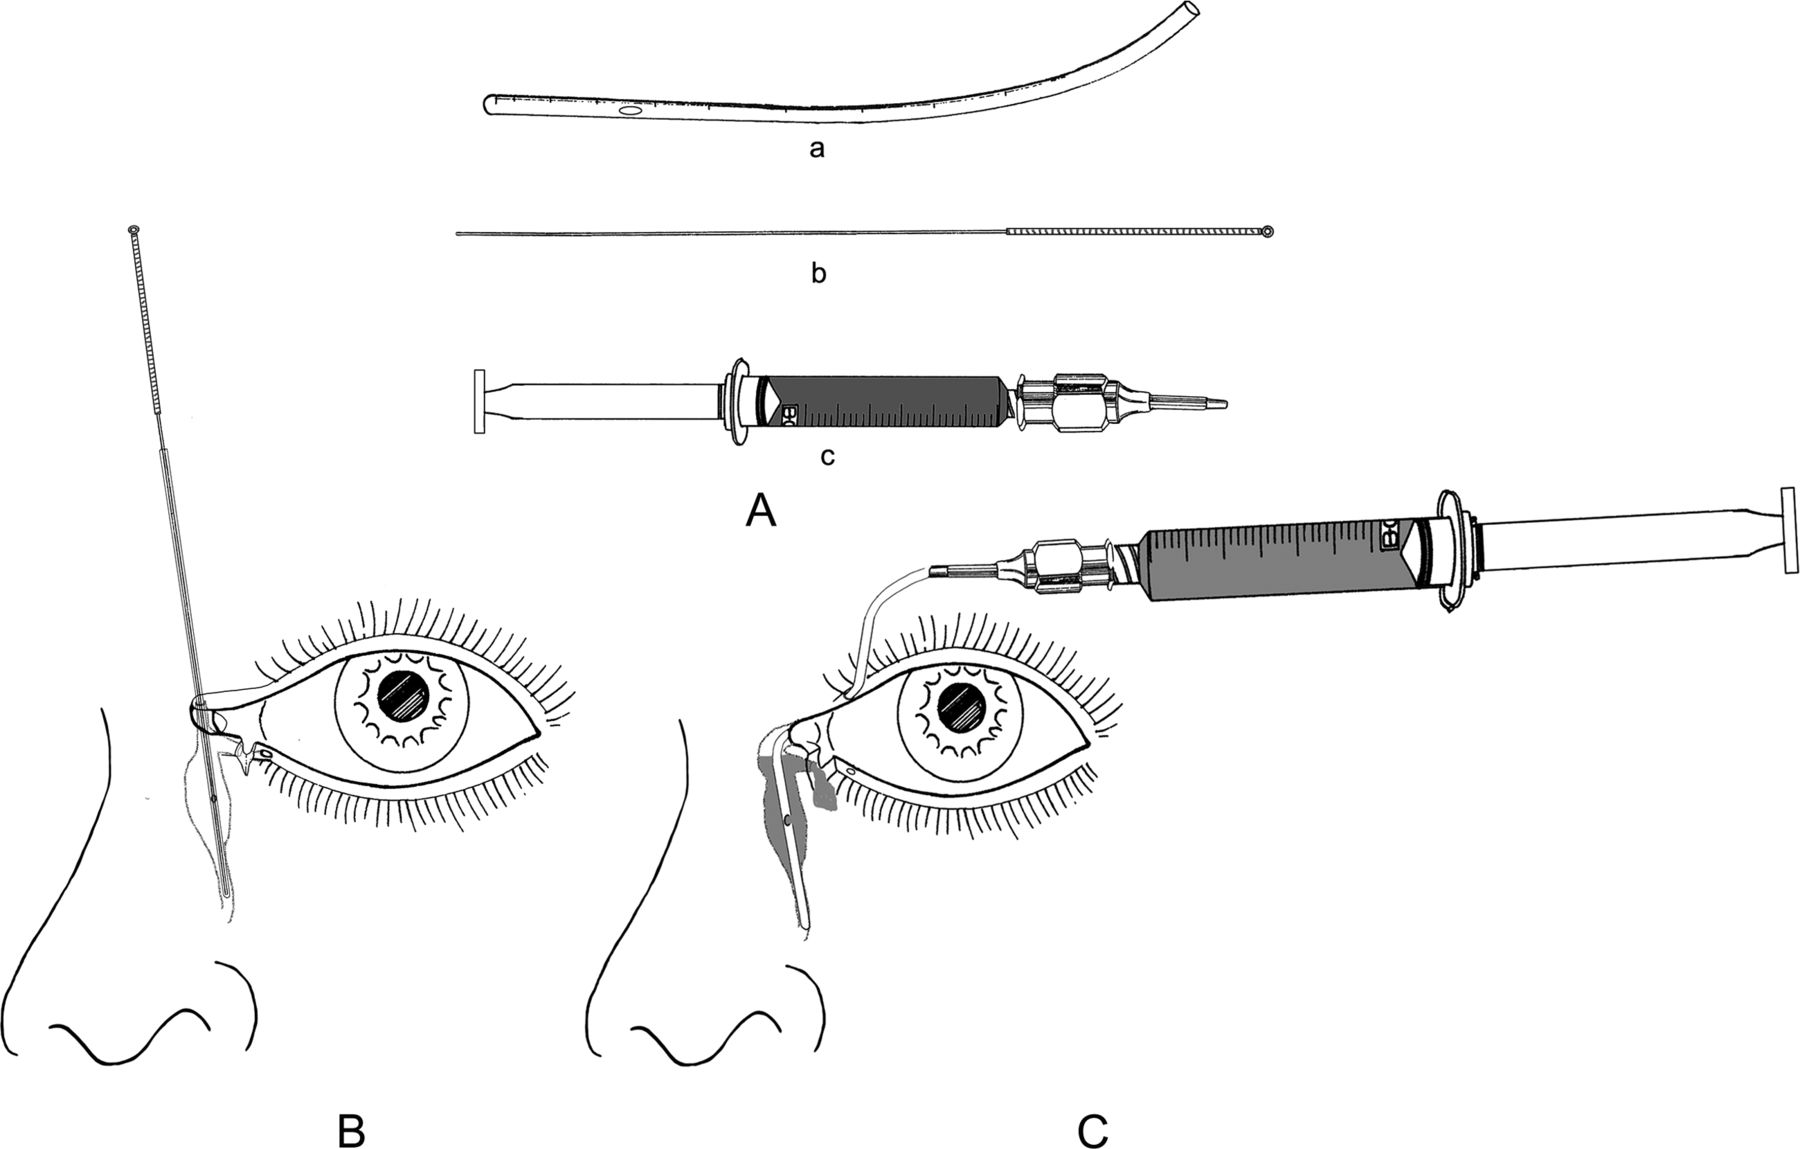 A Novel Modified Soft Probe For Identifying The Distal Cut